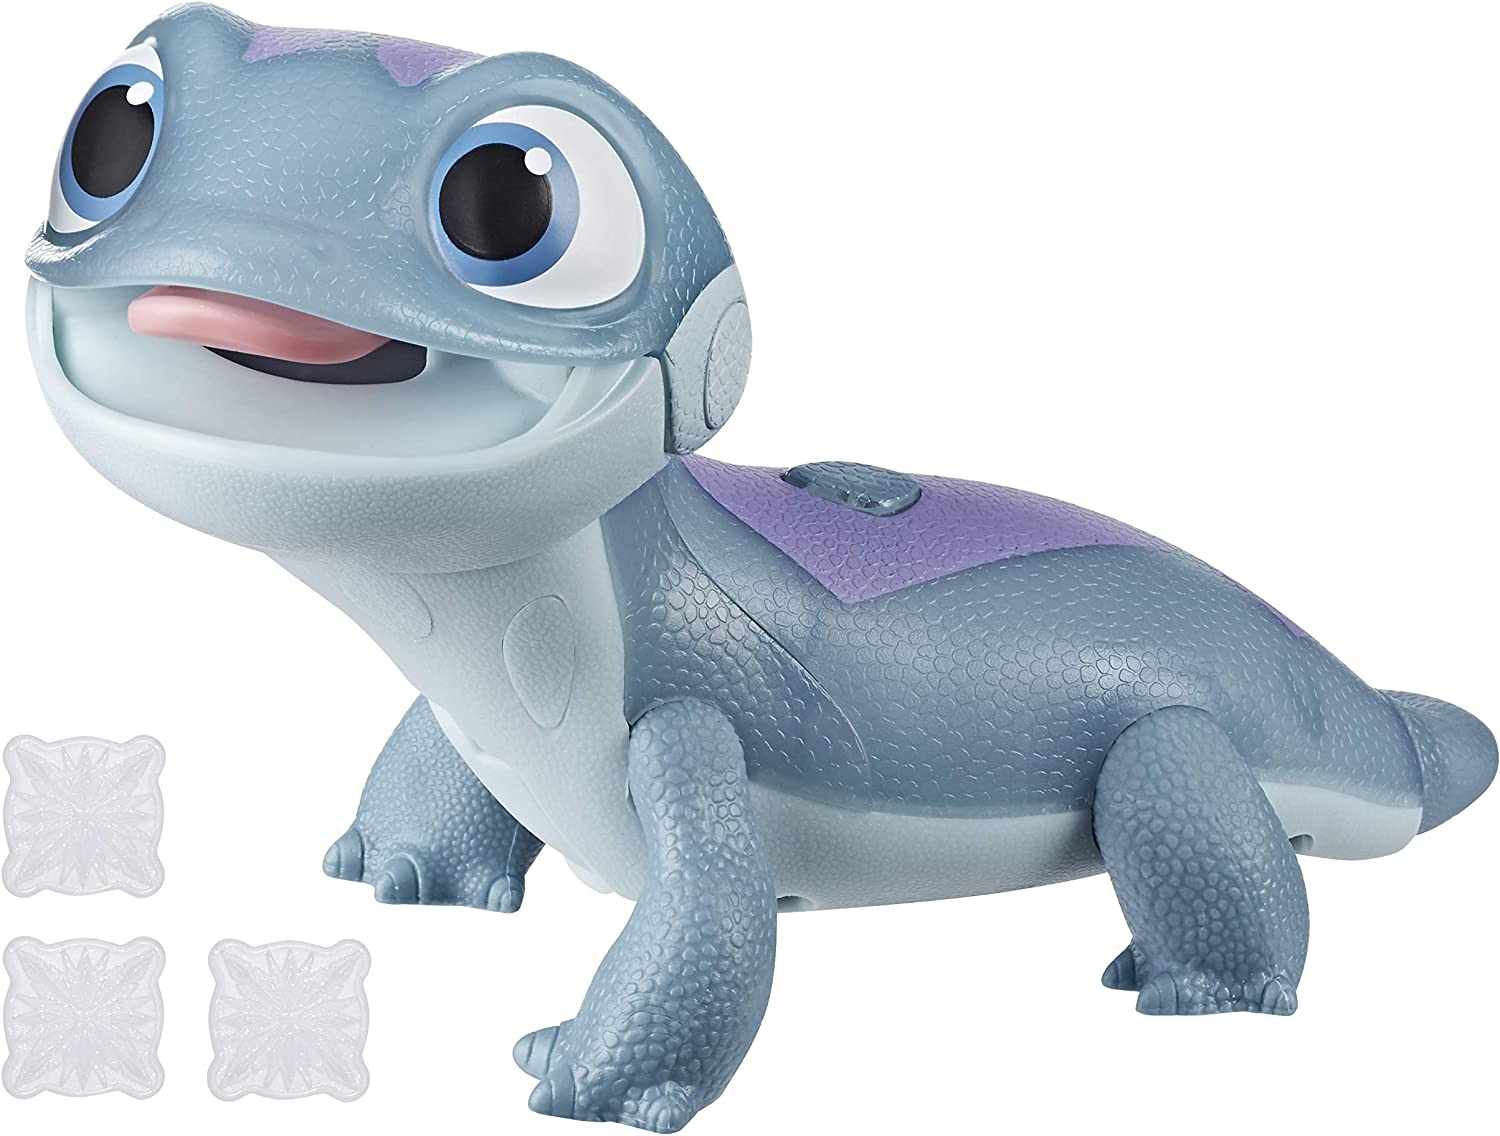 Amazon Com Disney Frozen Fire Spirit S Snowy Snack Salamander Toy With Lights Inspired 2 Movie Toys Games